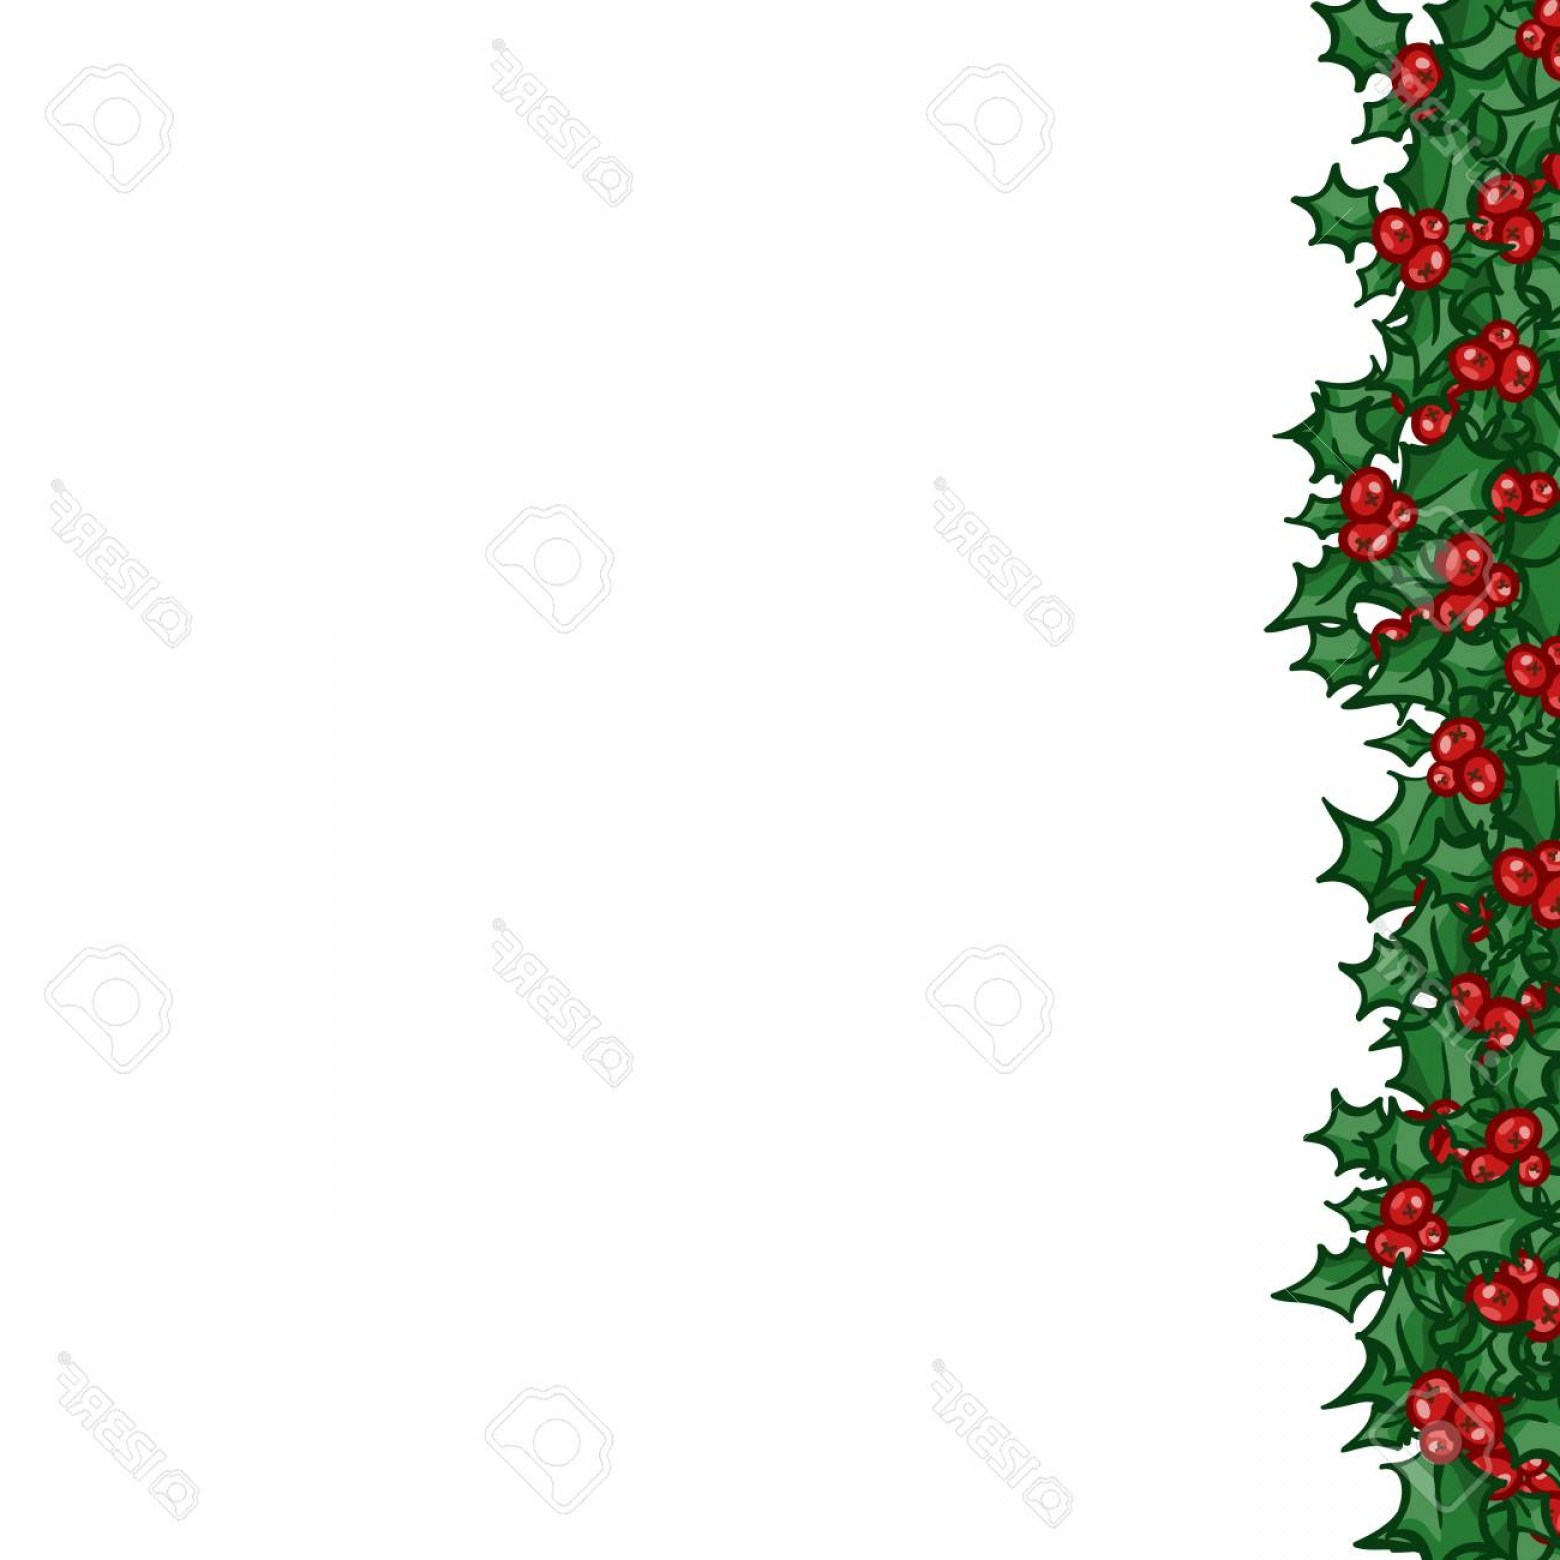 Christmas Holly Border Vector: Photostock Vector Holly With Berry Left Side Border Vector Christmas And New Year Design Element